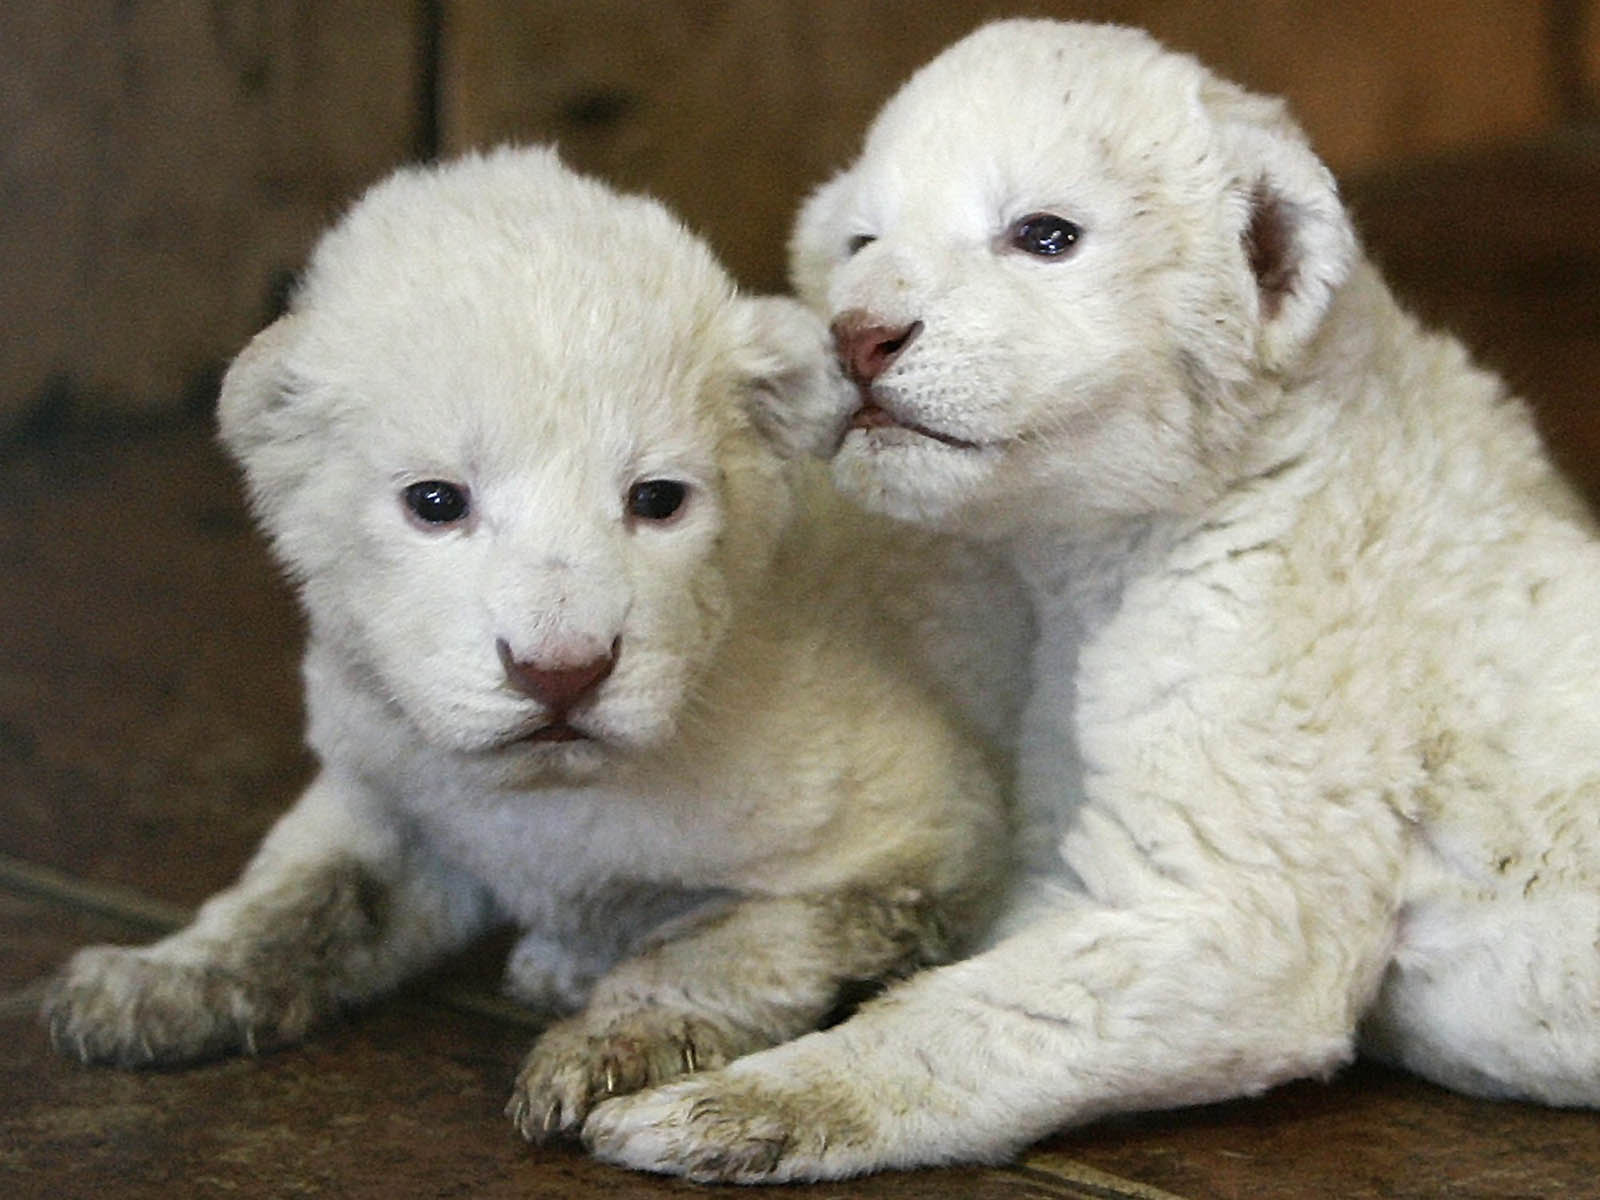 Baby White Lion Pictures - 2013 Wallpapers - photo#4